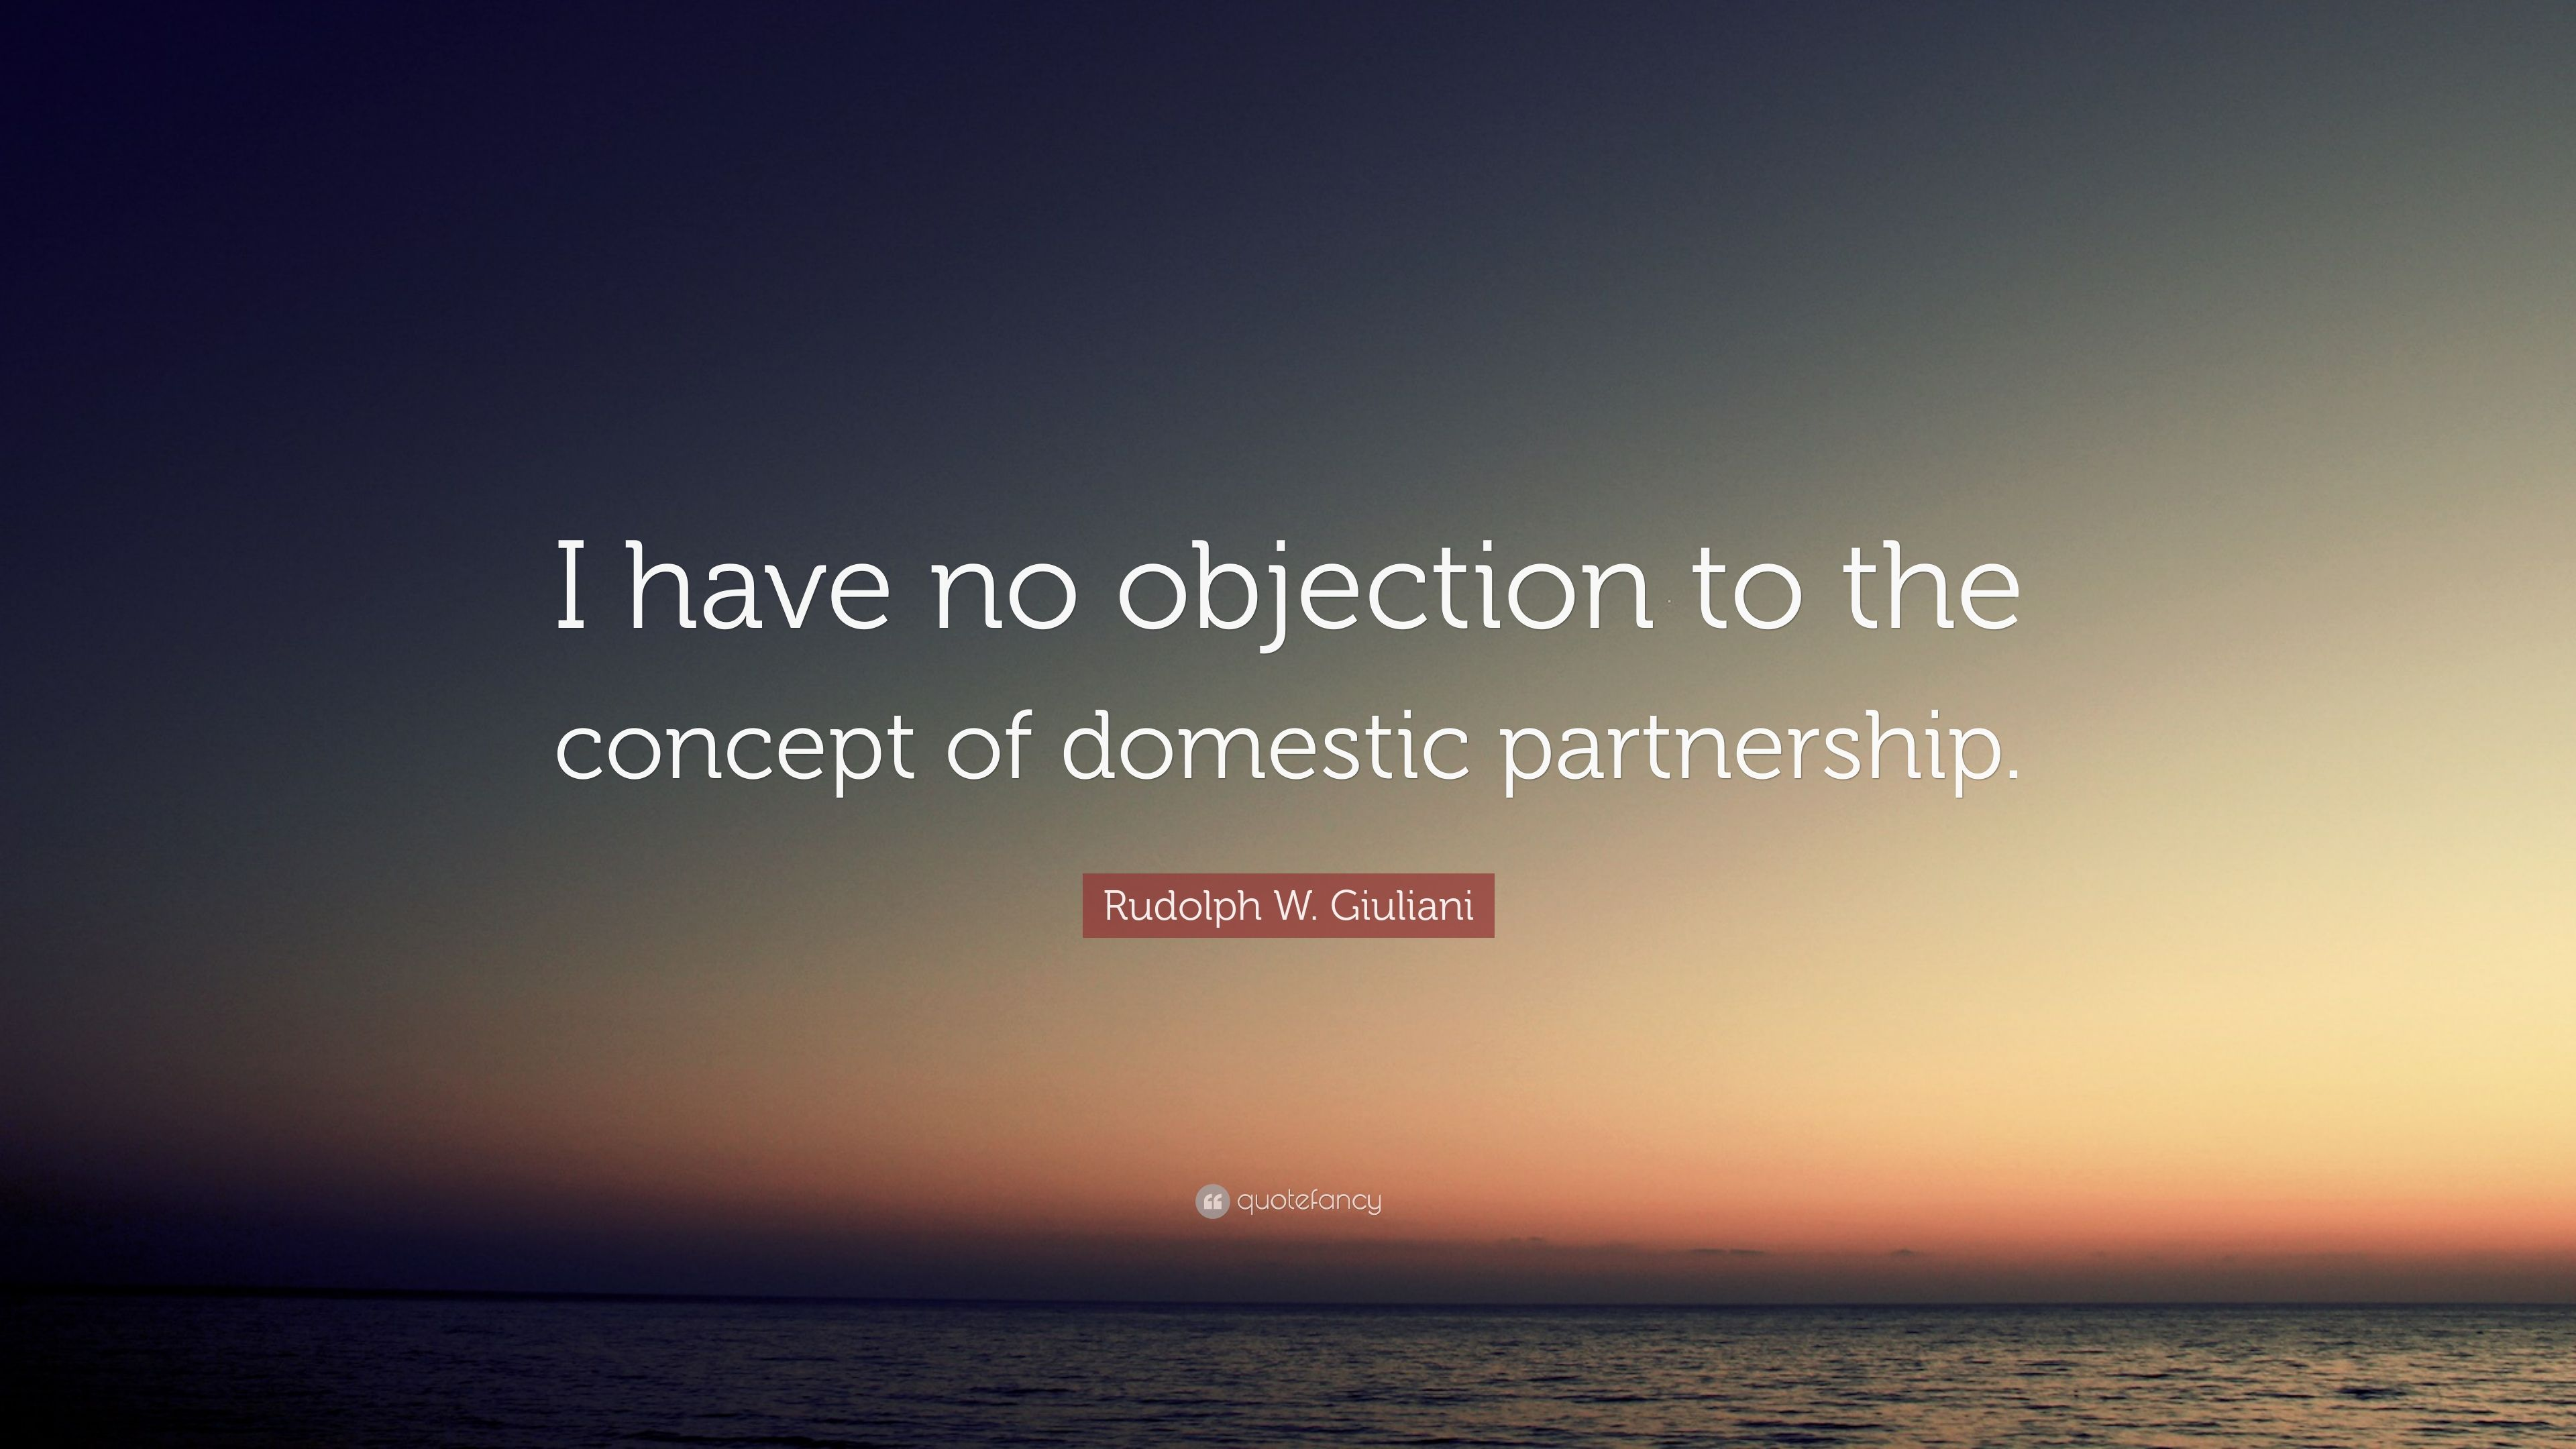 Rudolph W. Giuliani Quote: U201cI Have No Objection To The Concept Of Domestic